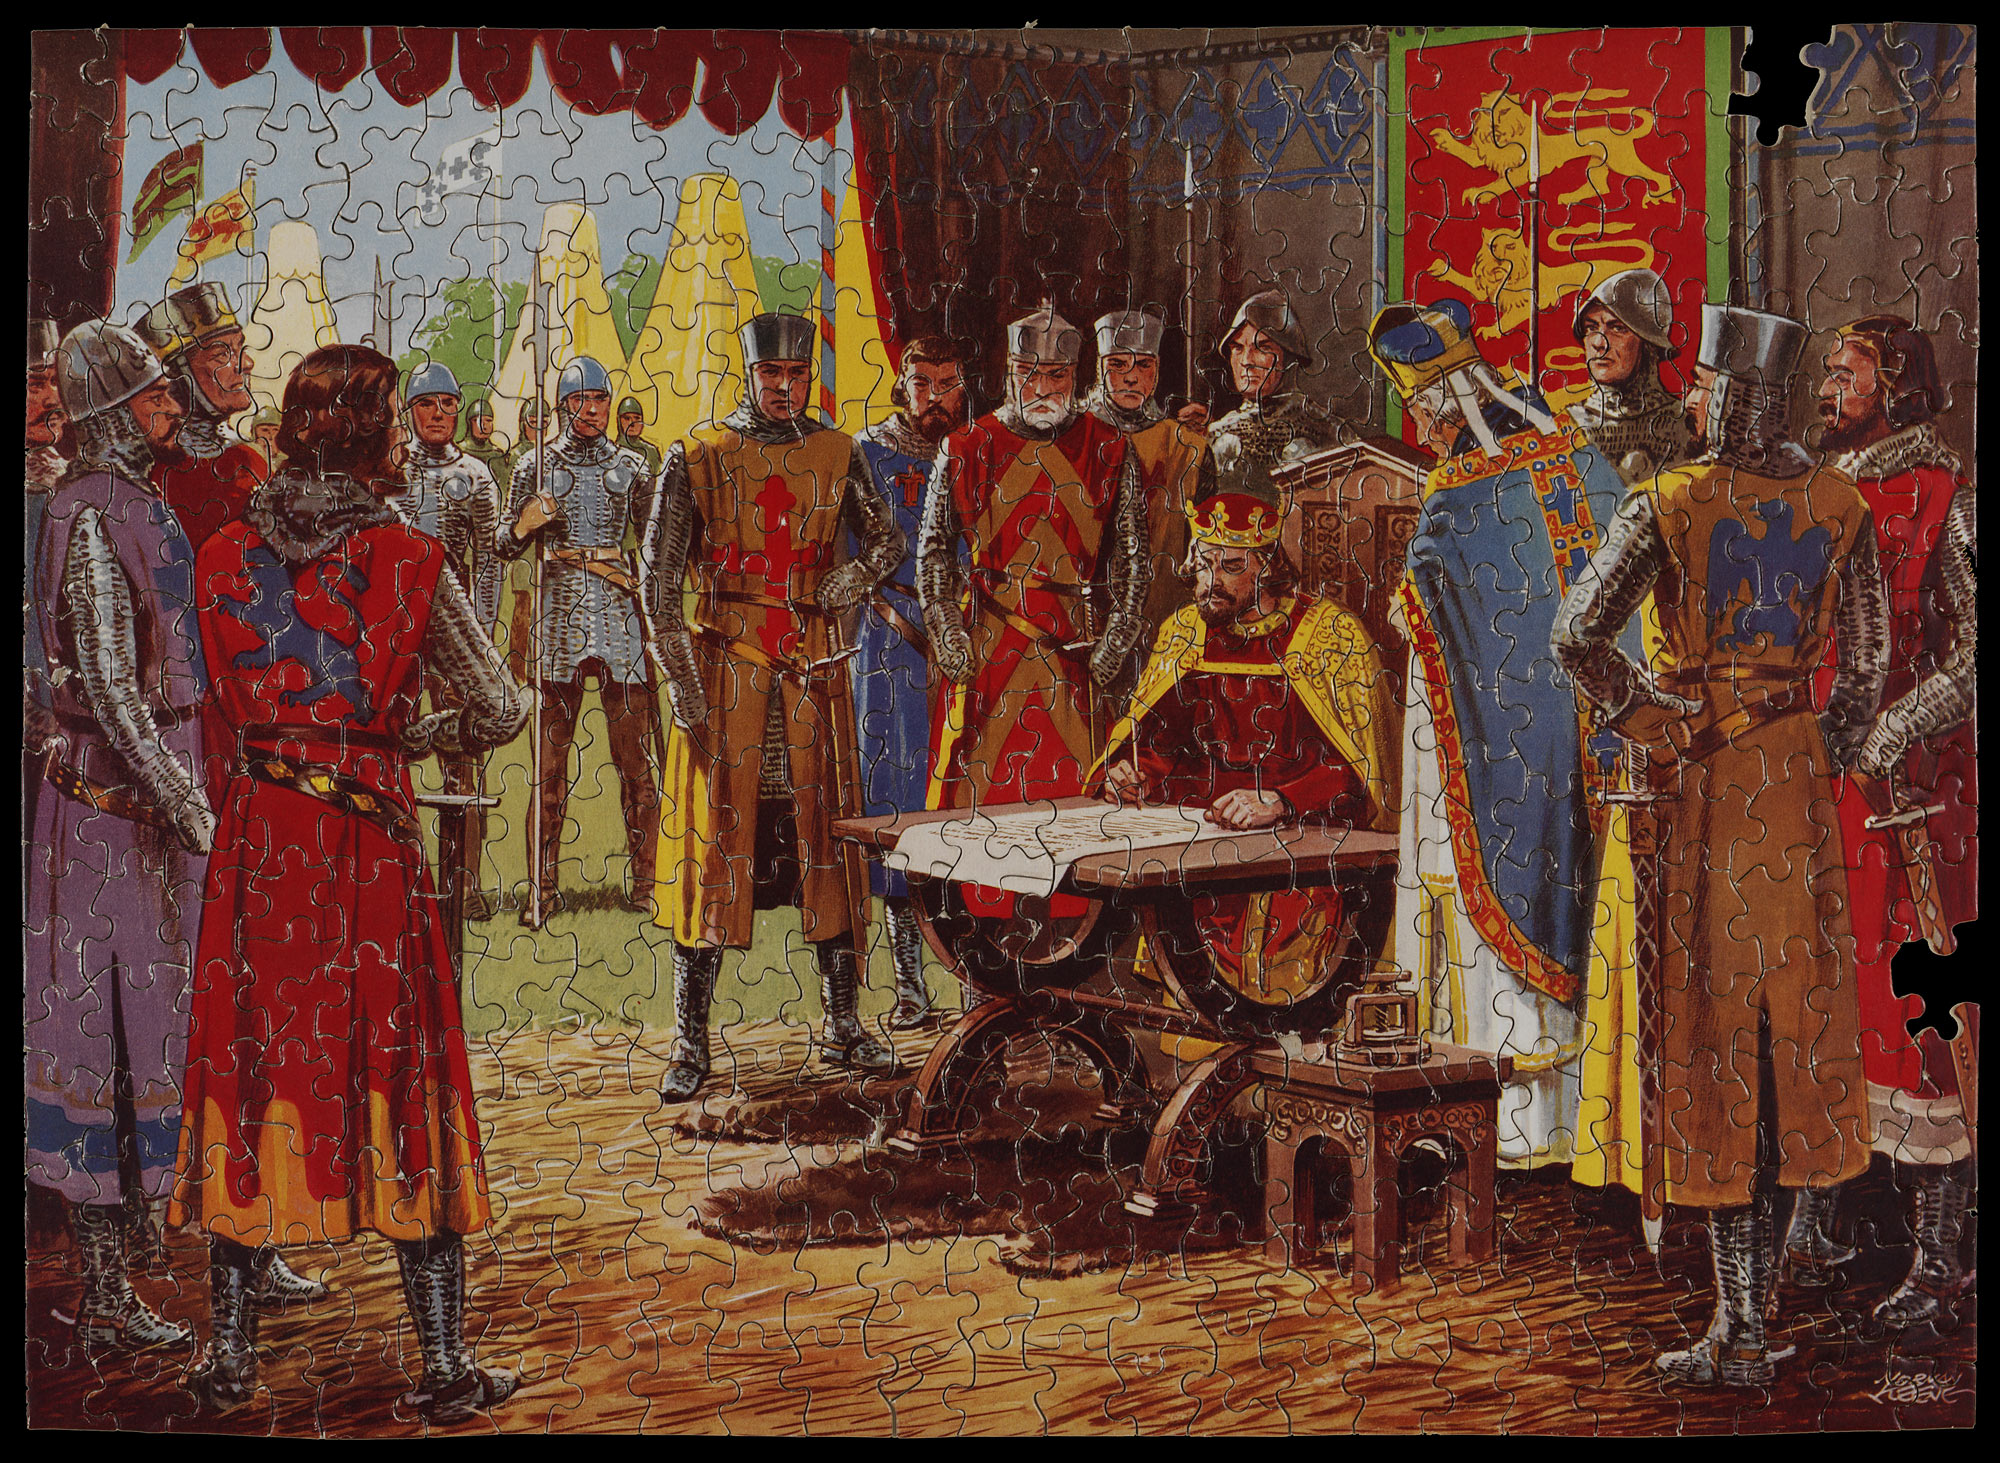 Jigsaw puzzle depicting the signing of Magna Carta